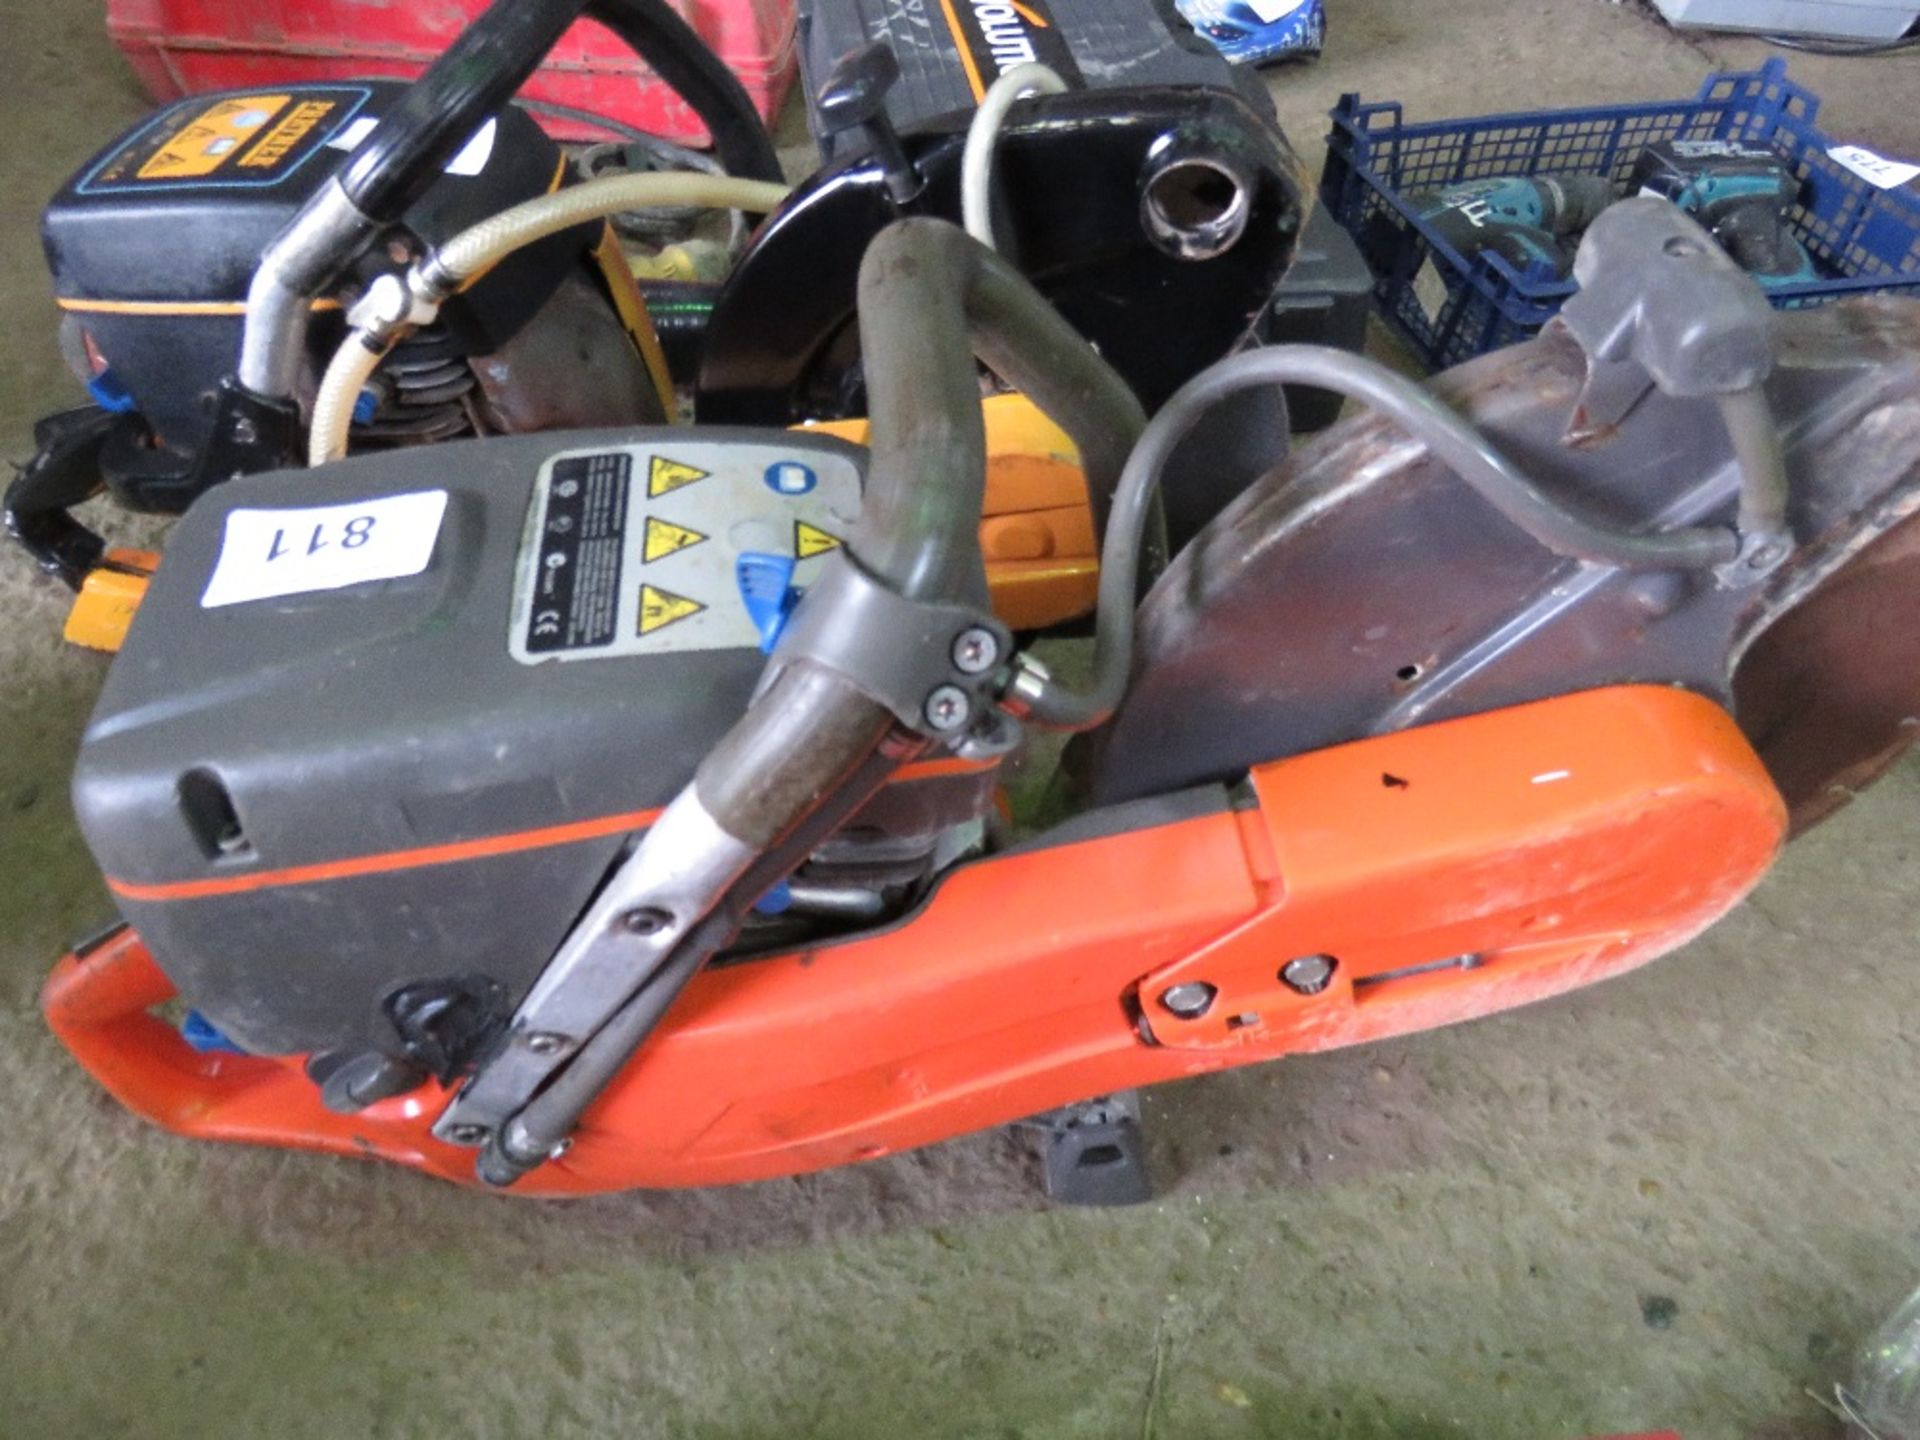 HUSQVARNA K760 PETROL SAW WITH A BLADE. - Image 2 of 2